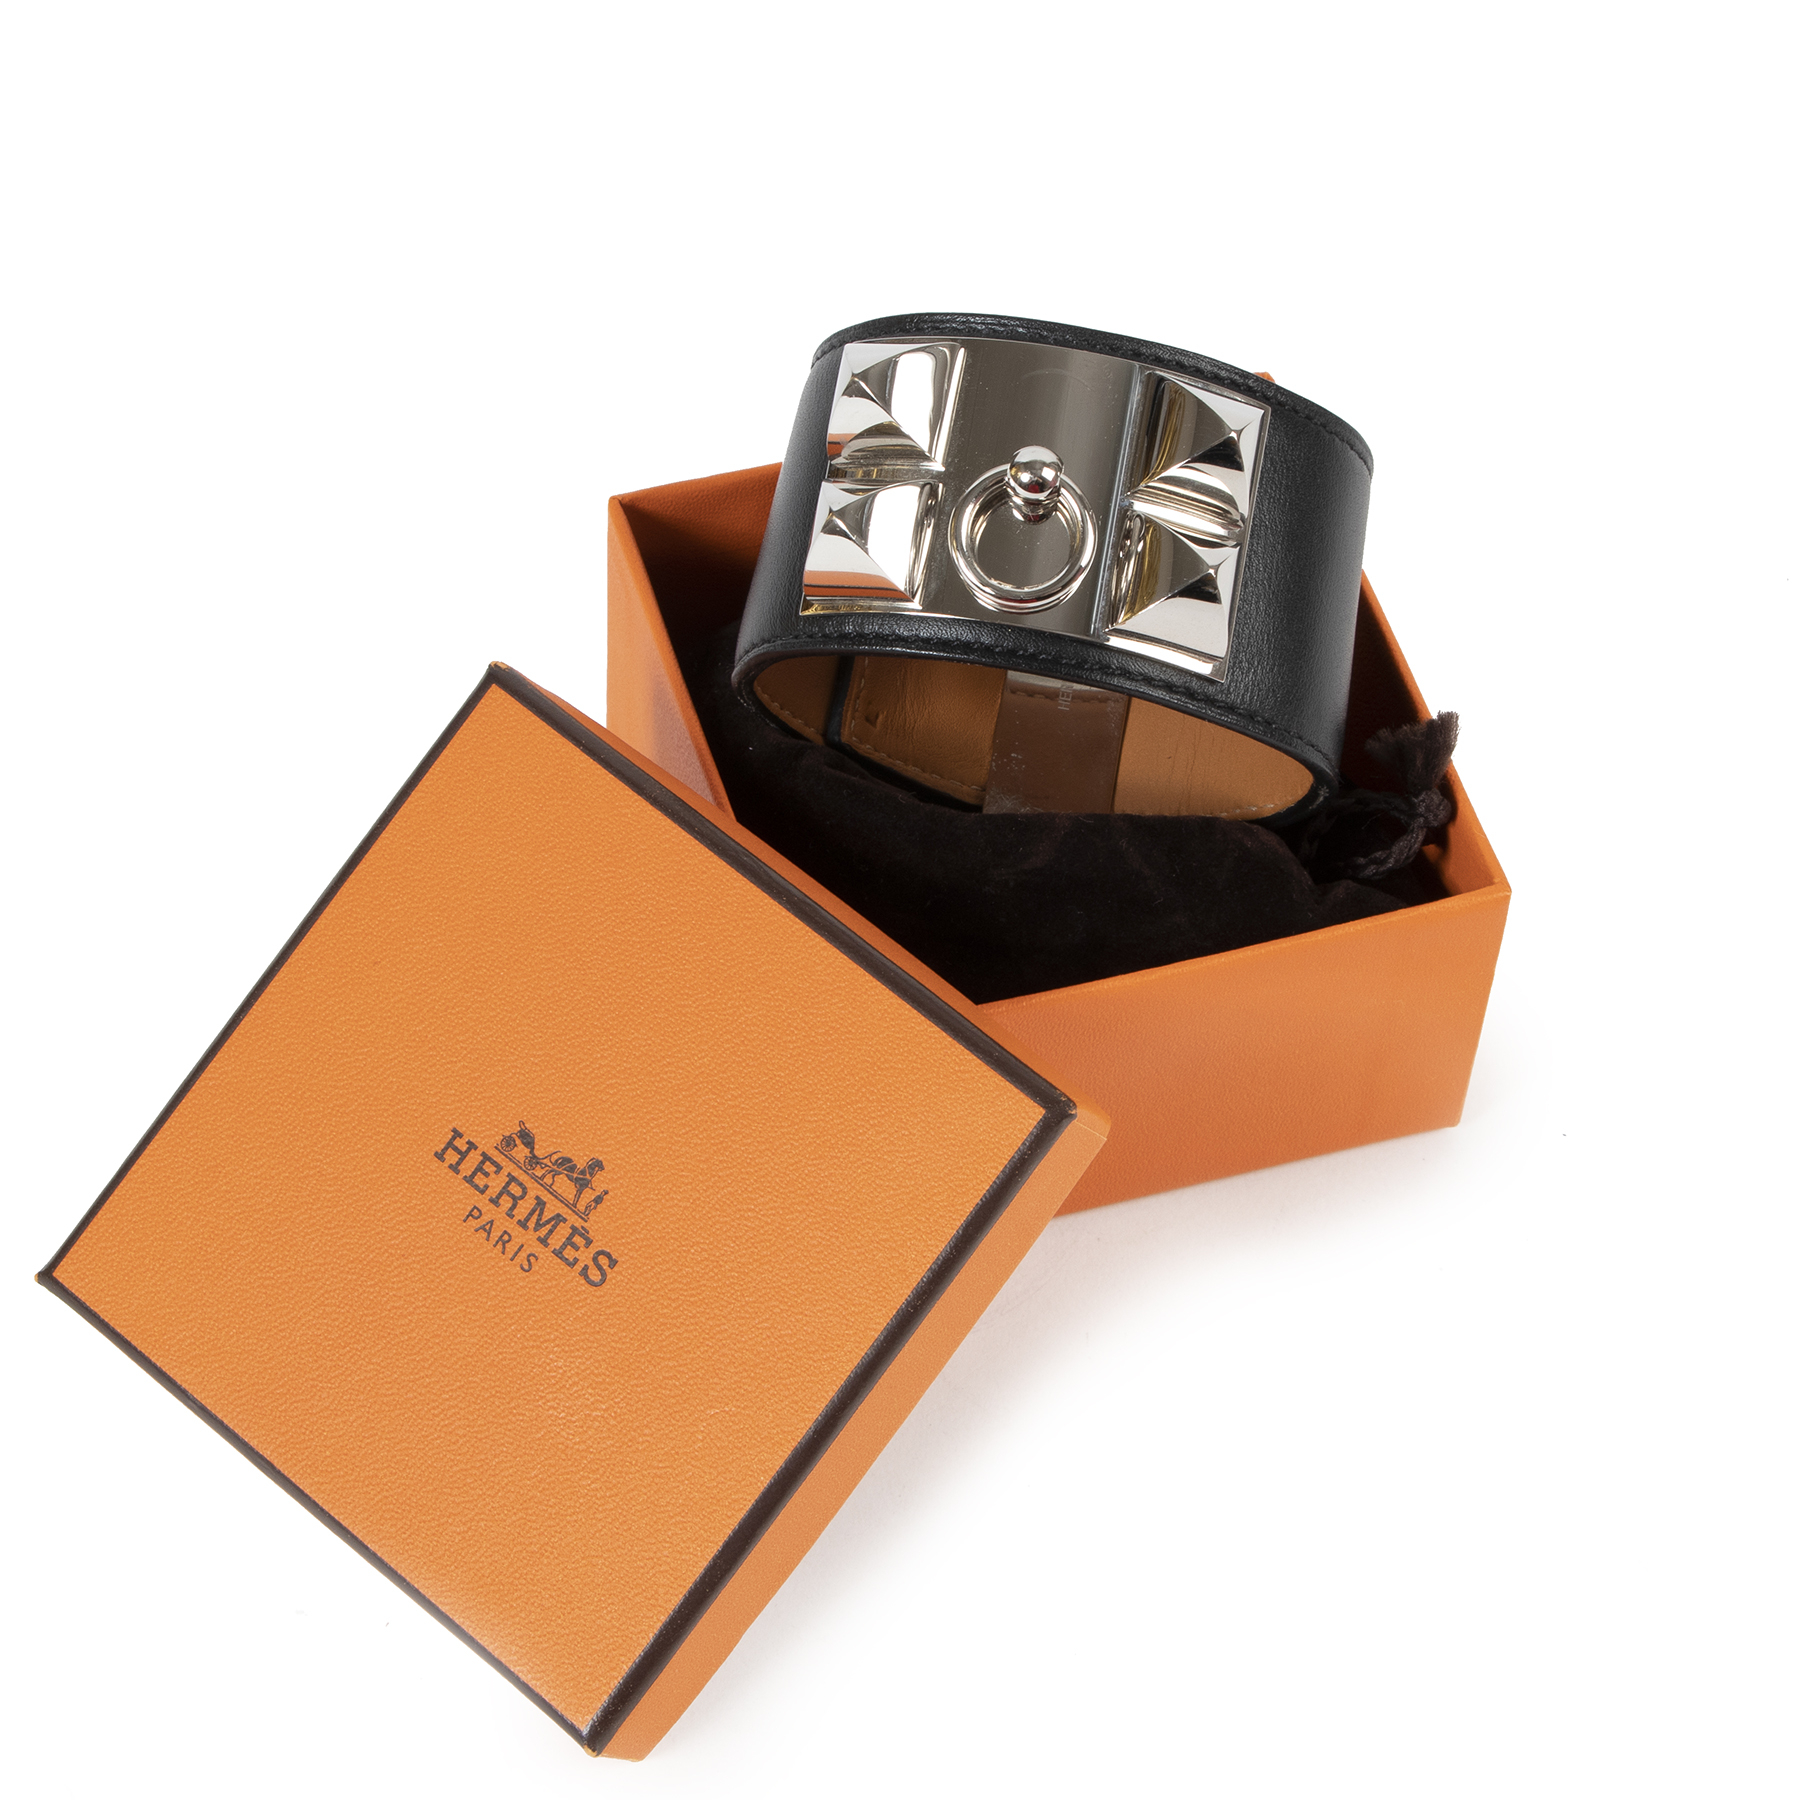 Authentieke Tweedehands Hermès Black Leather Collier De Chien Bracelet - Size Large juiste prijs veilig online shoppen luxe merken webshop winkelen Antwerpen België mode fashion